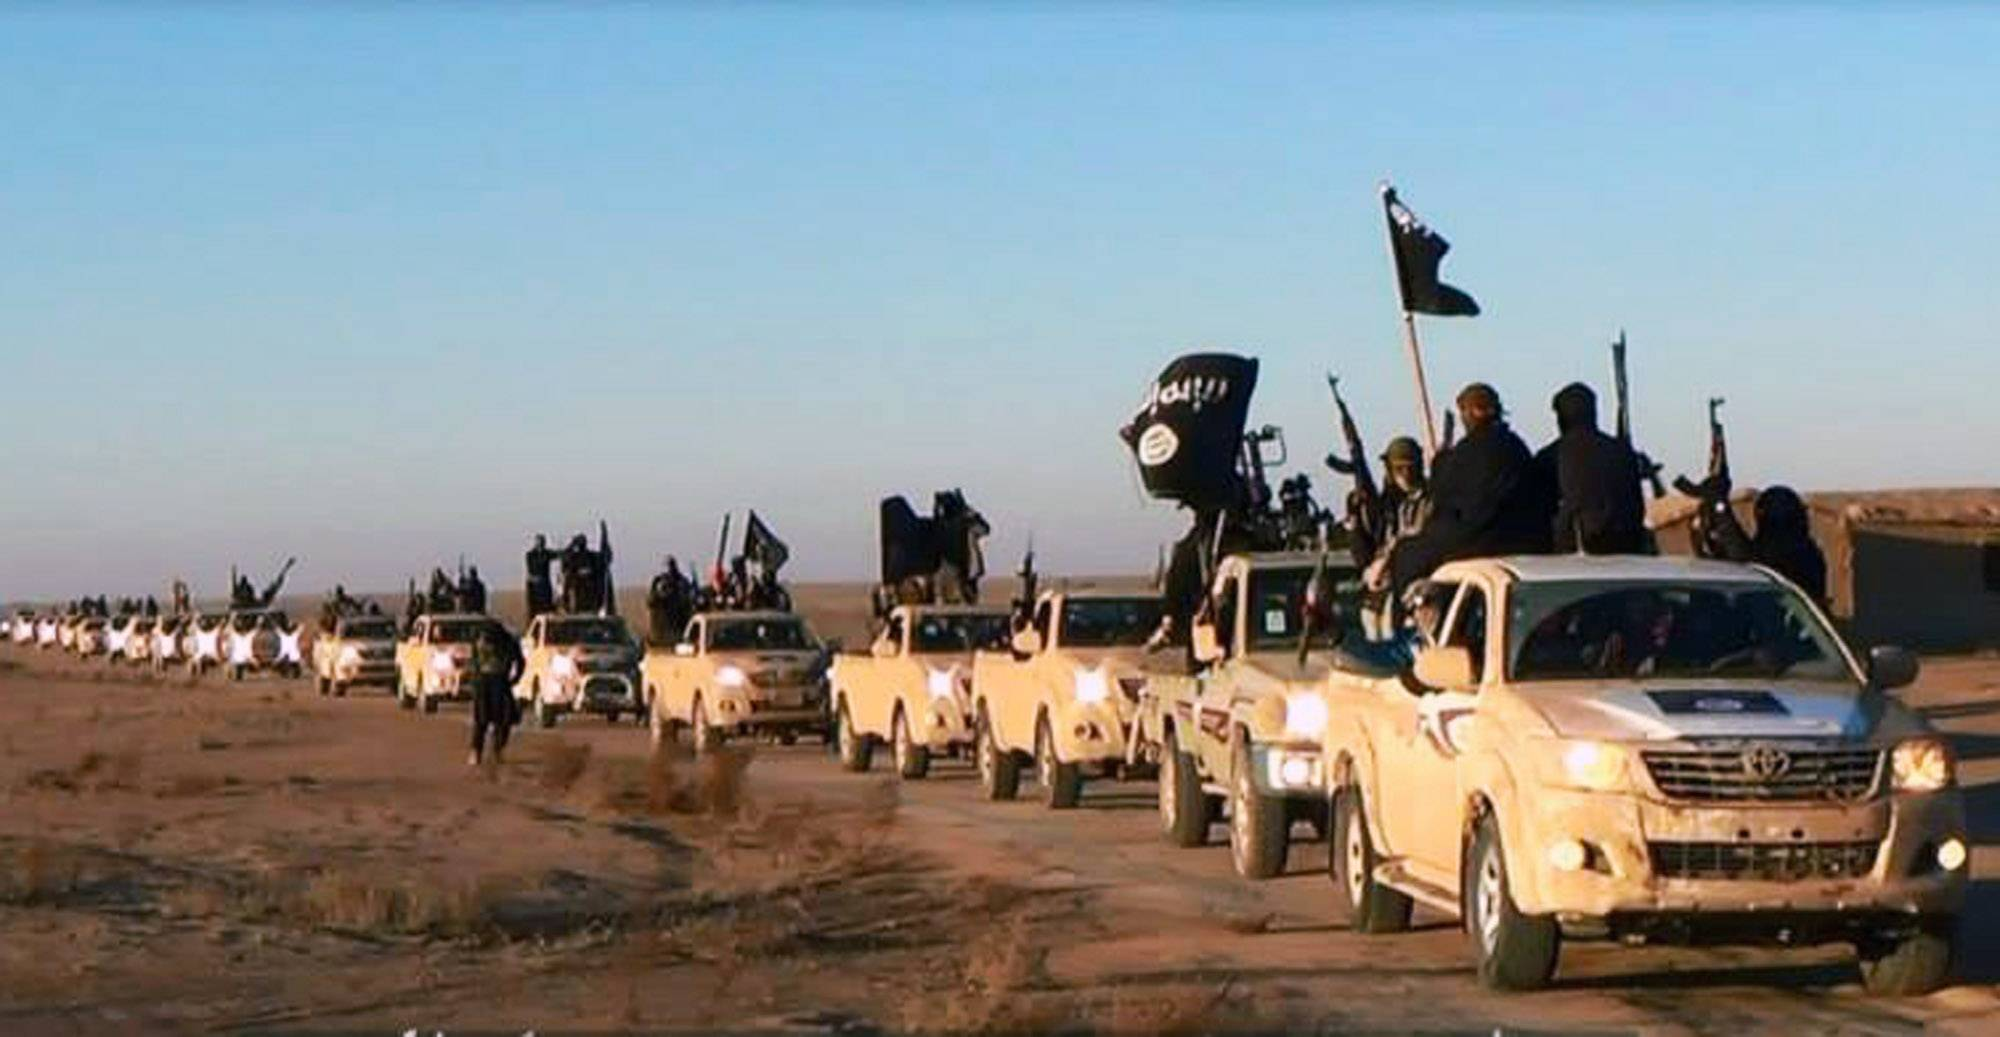 This file image posted on a militant website on Tuesday, Jan. 7, 2014, which is consistent with AP reporting, shows a convoy of vehicles and fighters from the al-Qaida-linked Islamic State of Iraq and the Levant (ISIL) fighters in Iraq's Anbar Province. The Islamic State was originally al-Qaida's branch in Iraq, but it used Syria's civil war to vault into something more powerful. It defied orders from al-Qaida's central command and expanded its operations into Syria, ostensibly to fight to topple Assad. But it has turned mainly to conquering territory for itself, often battling other rebels who stand in the way.